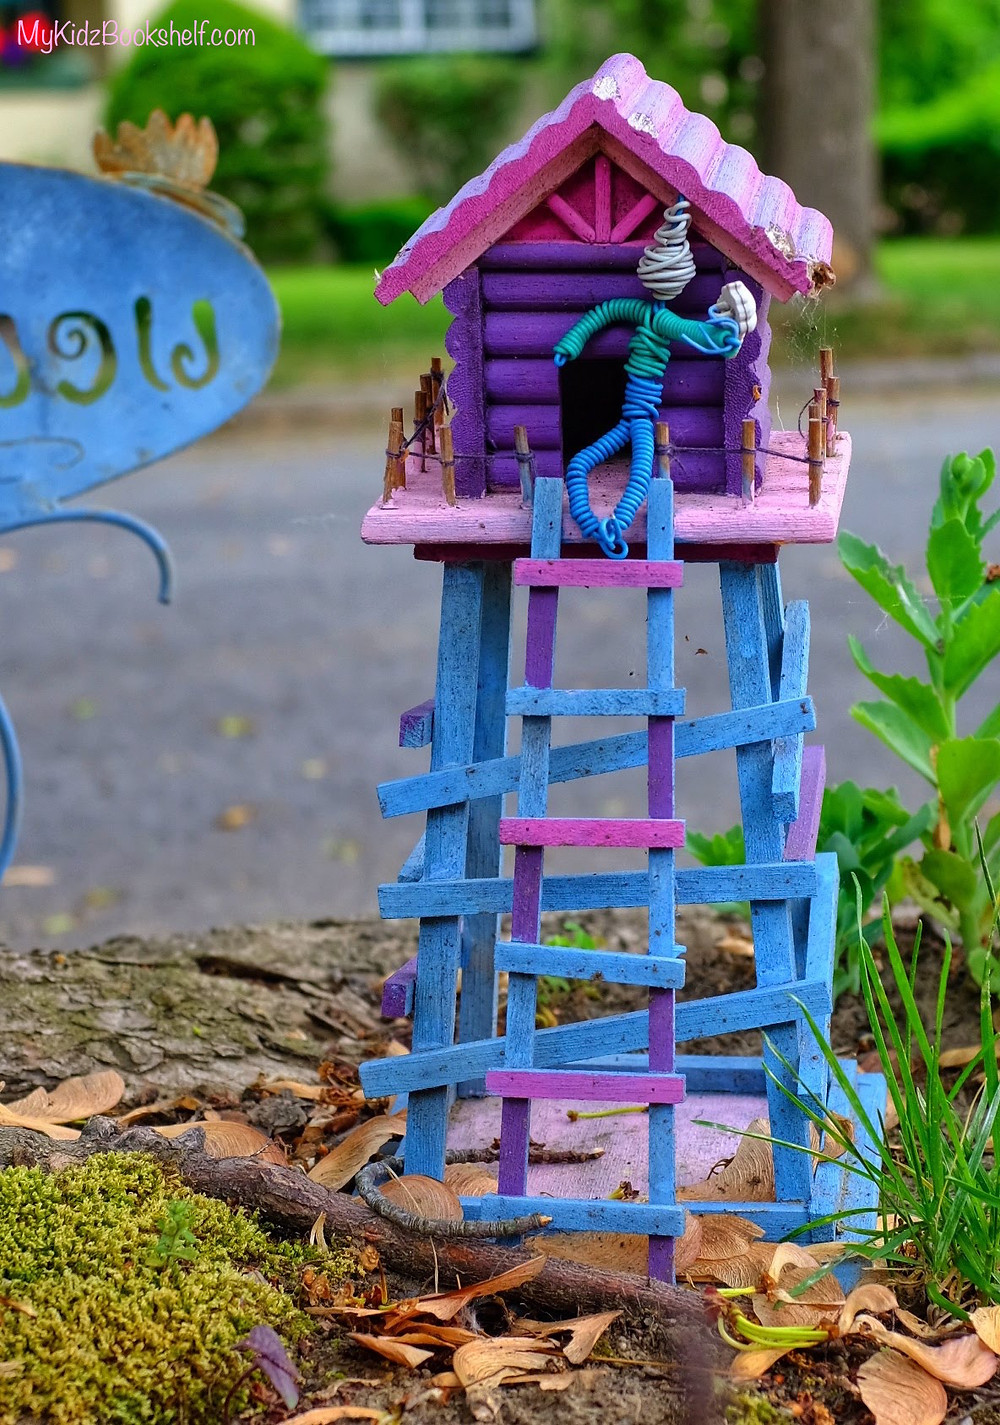 Fairy Garden fire tower with wire person at top